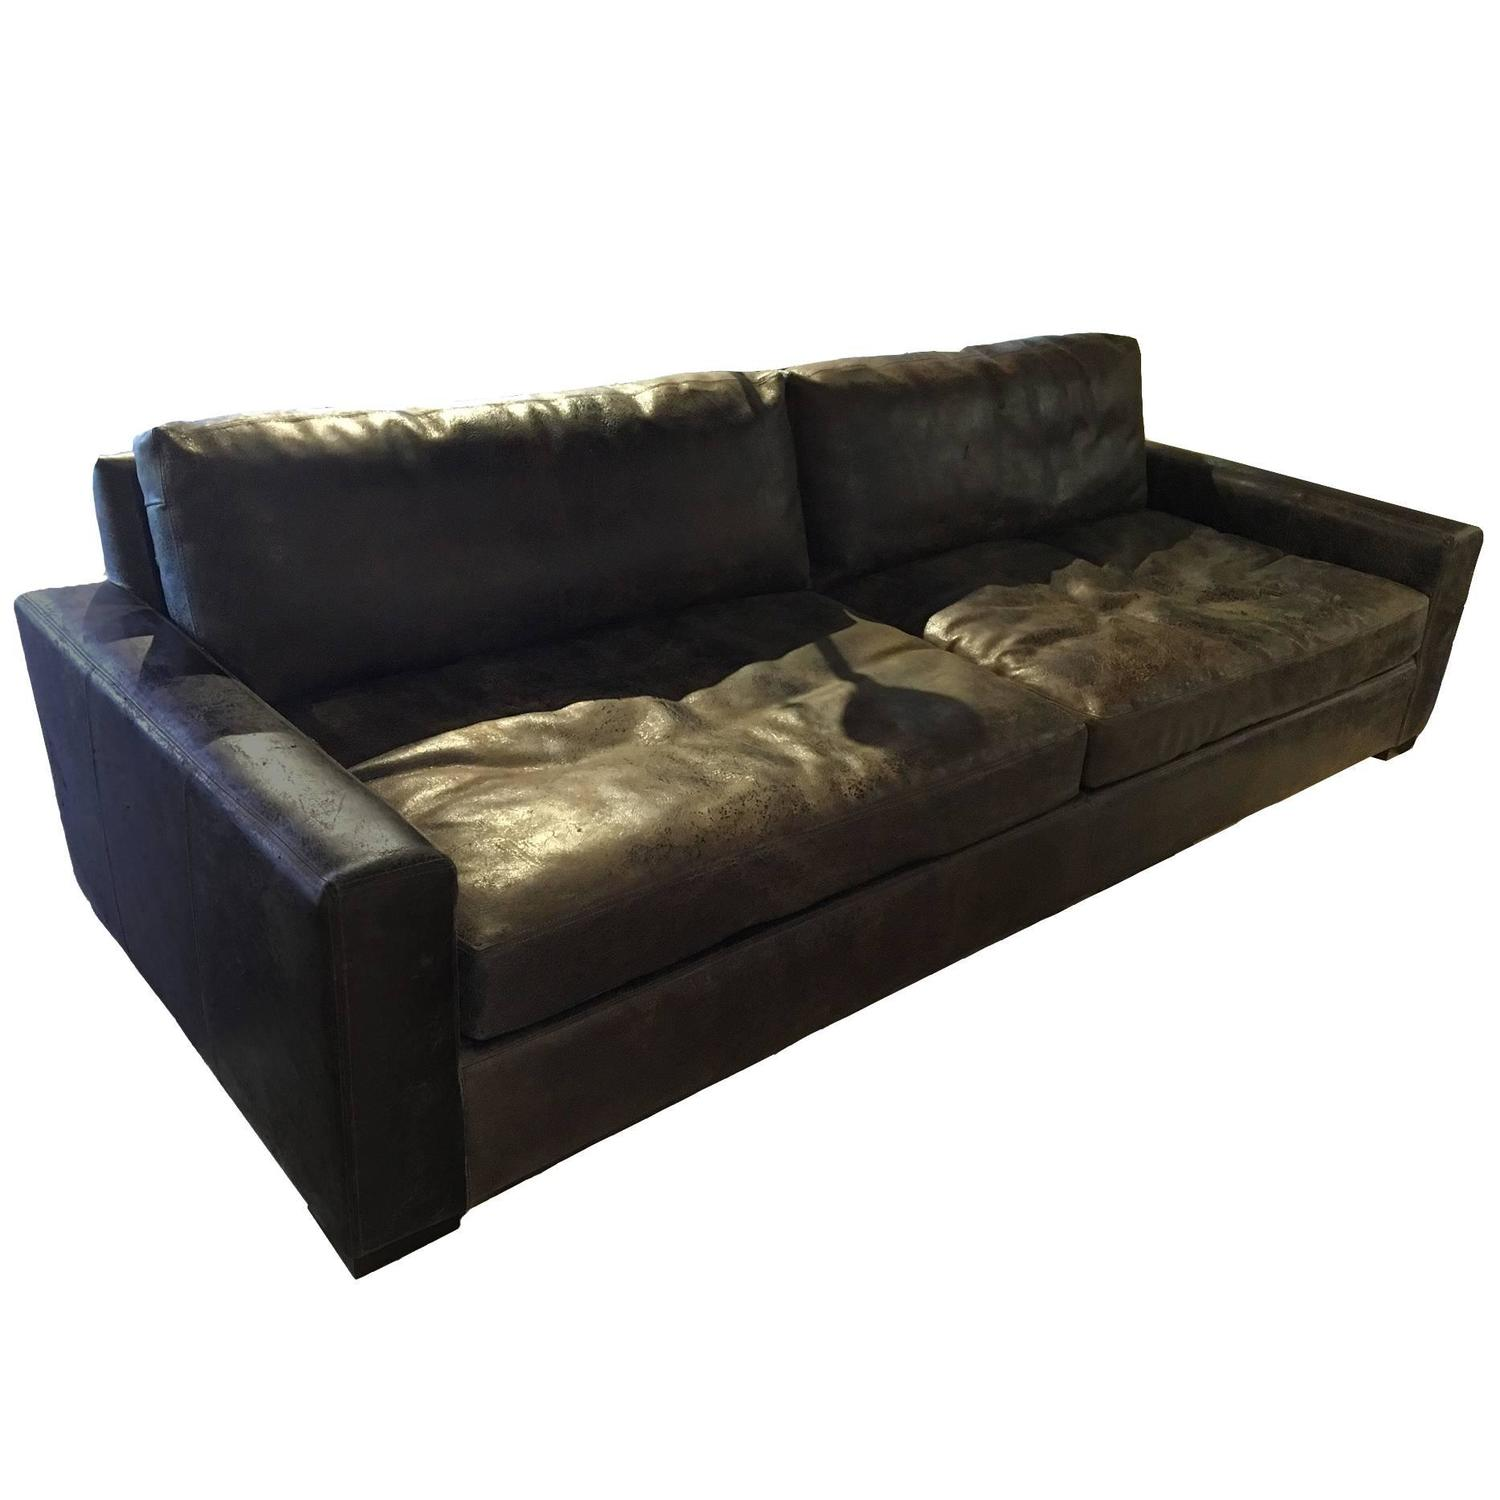 Oversized Distressed Leather Sofa For Sale at 1stdibs